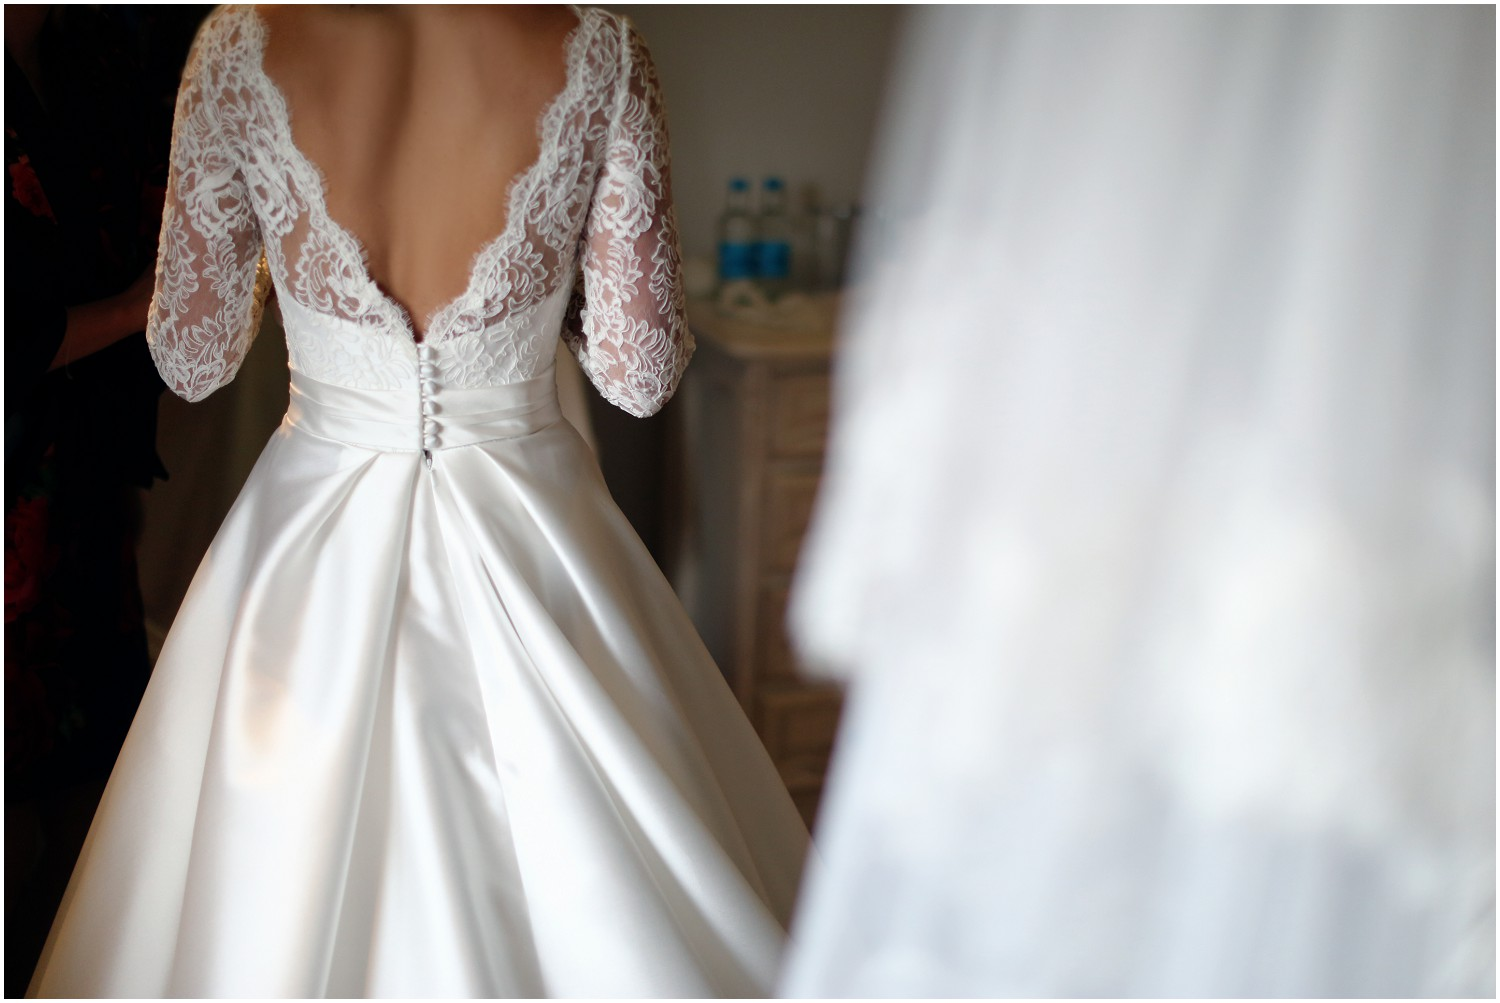 lace and button detail Suzanne neville wedding dress